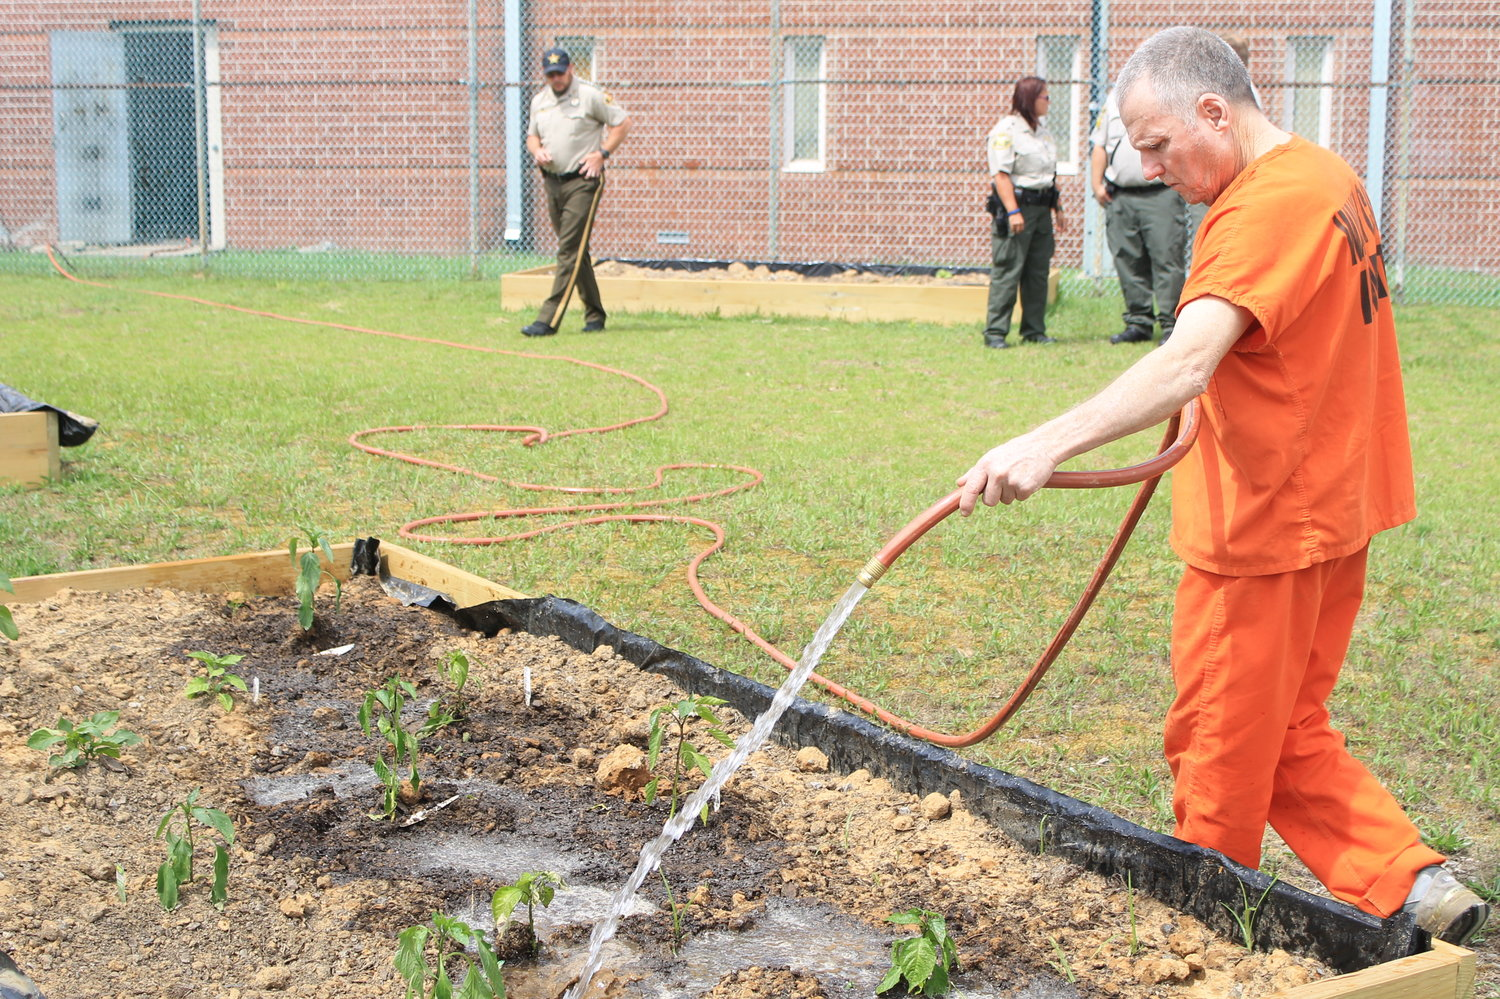 Mitchell Russell waters pepper plants at Walker County Jail on Tuesday. Members of Desperation Church helped install nine raised bed gardens in a fenced area behind the jail during Passion Week. A variety of tomato and pepper plants were planted this week.